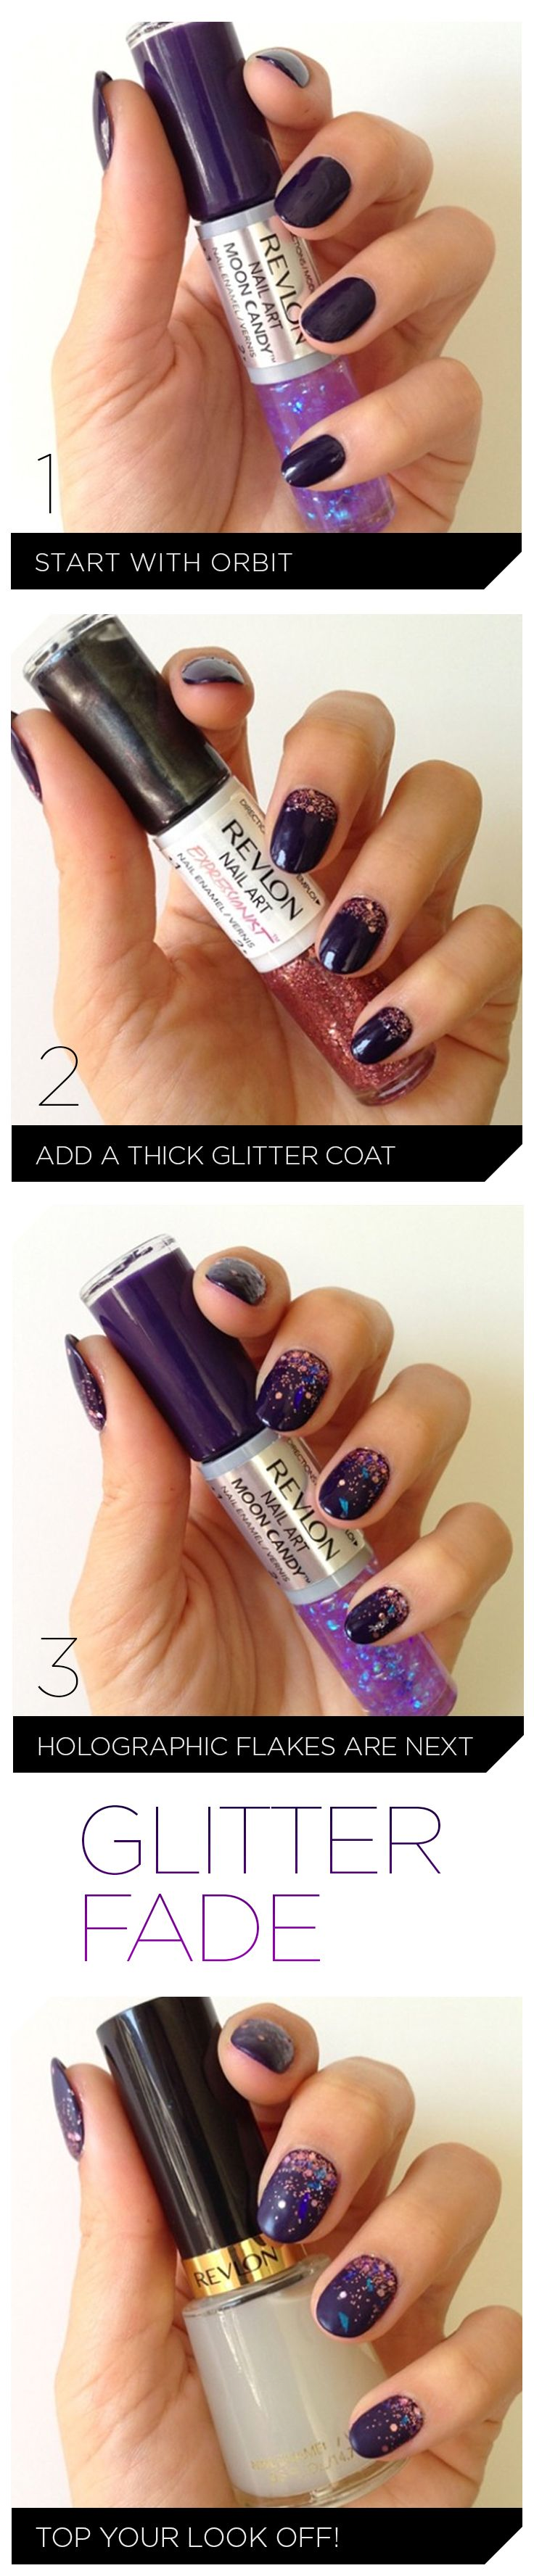 Get the step-by-step guide on how to get these glitter fade nails.